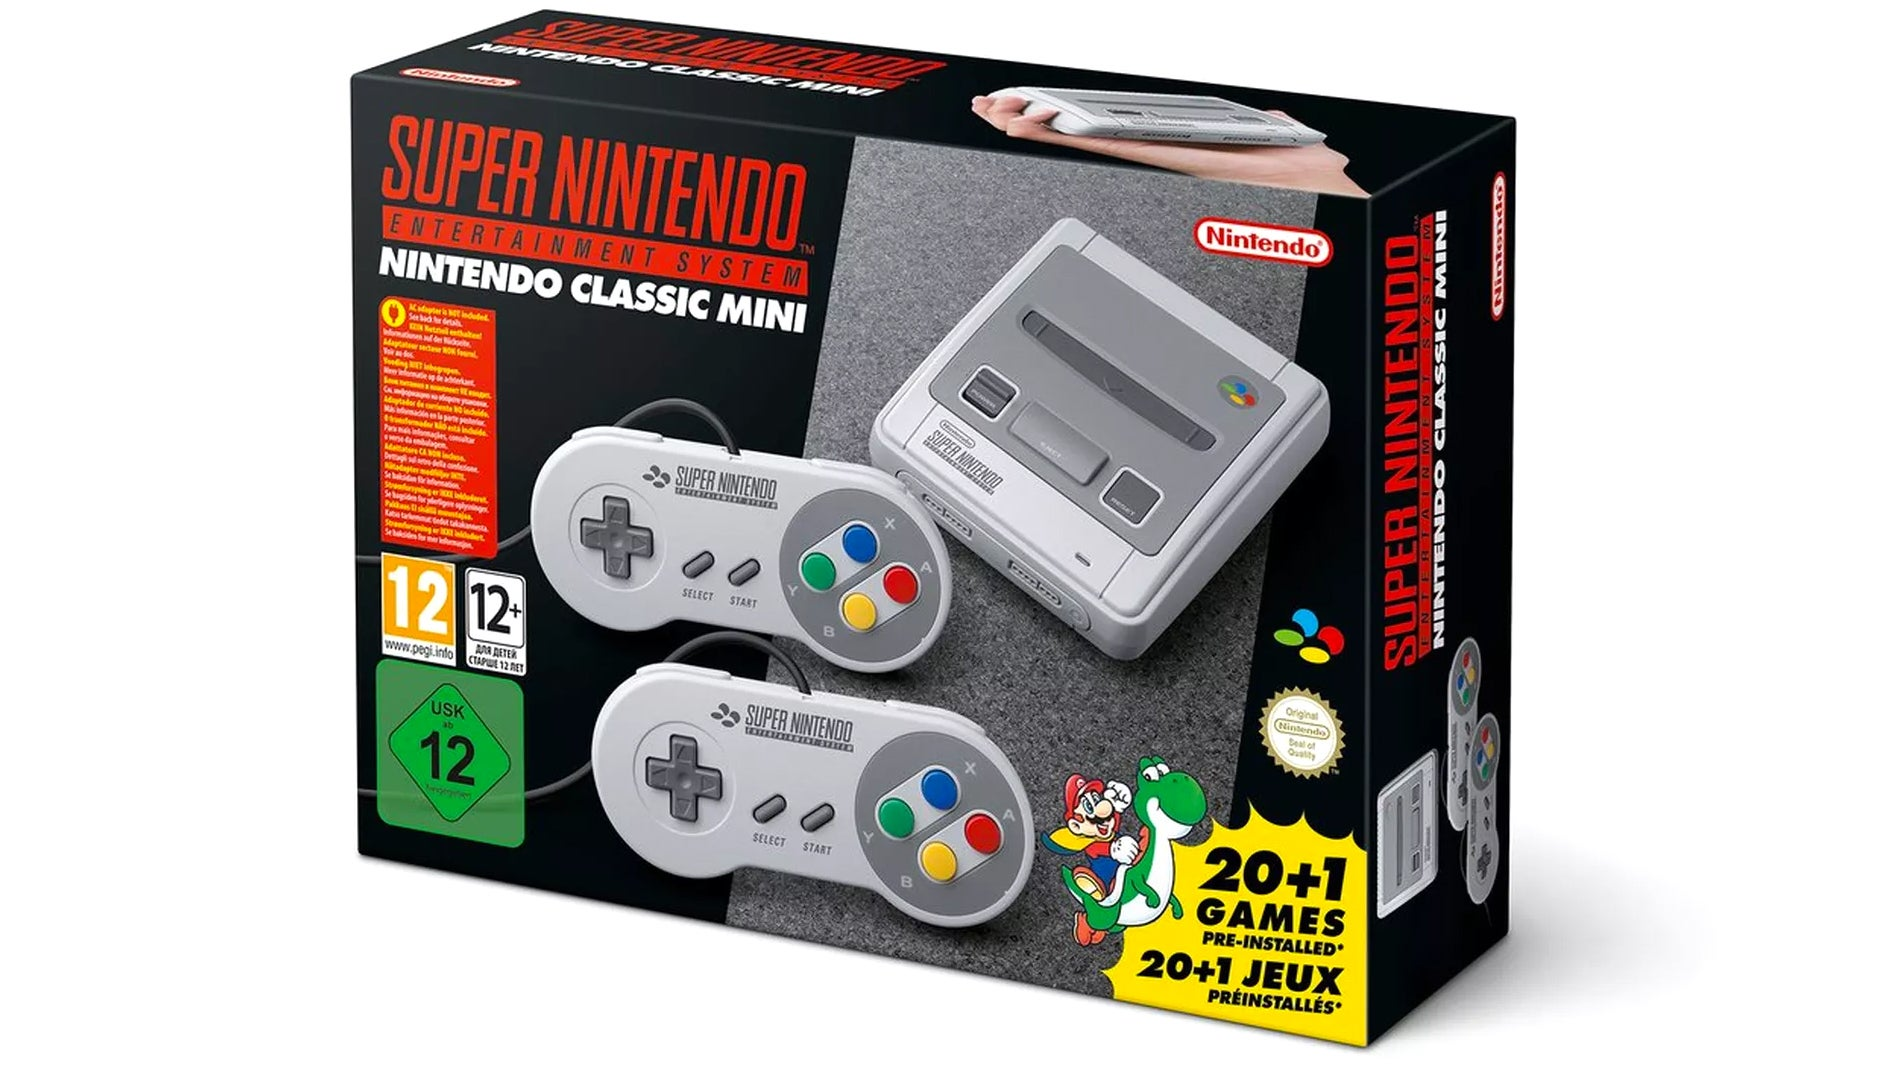 Nintendo Announces Release of SNES Classic Edition